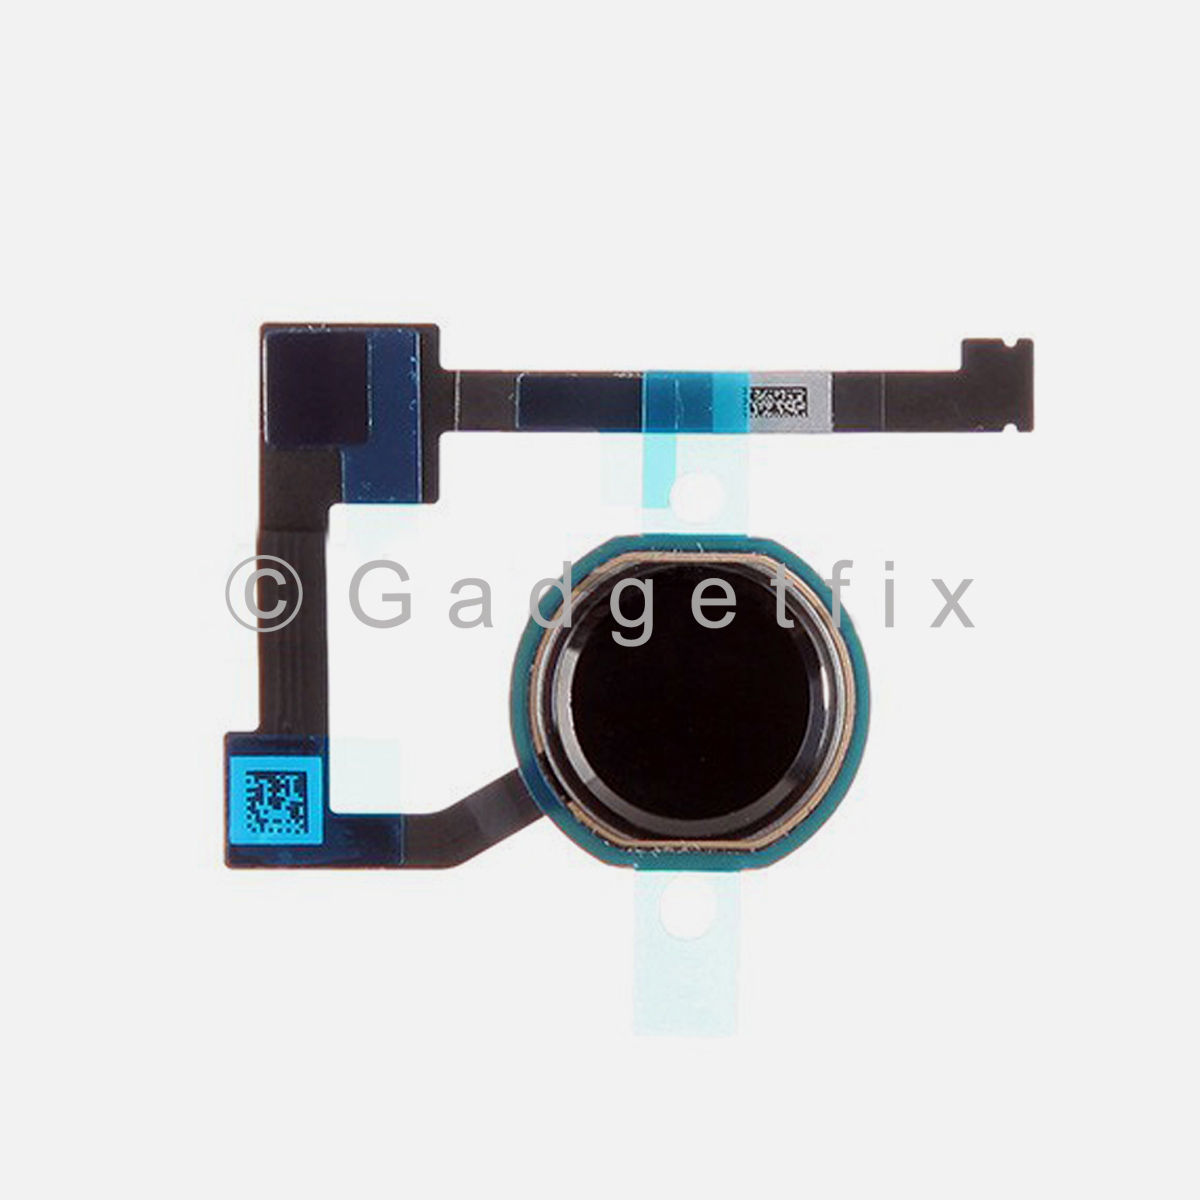 Black Home Menu Button Flex Cable Replacement Part for iPad Pro 12.9 A1584 A1652